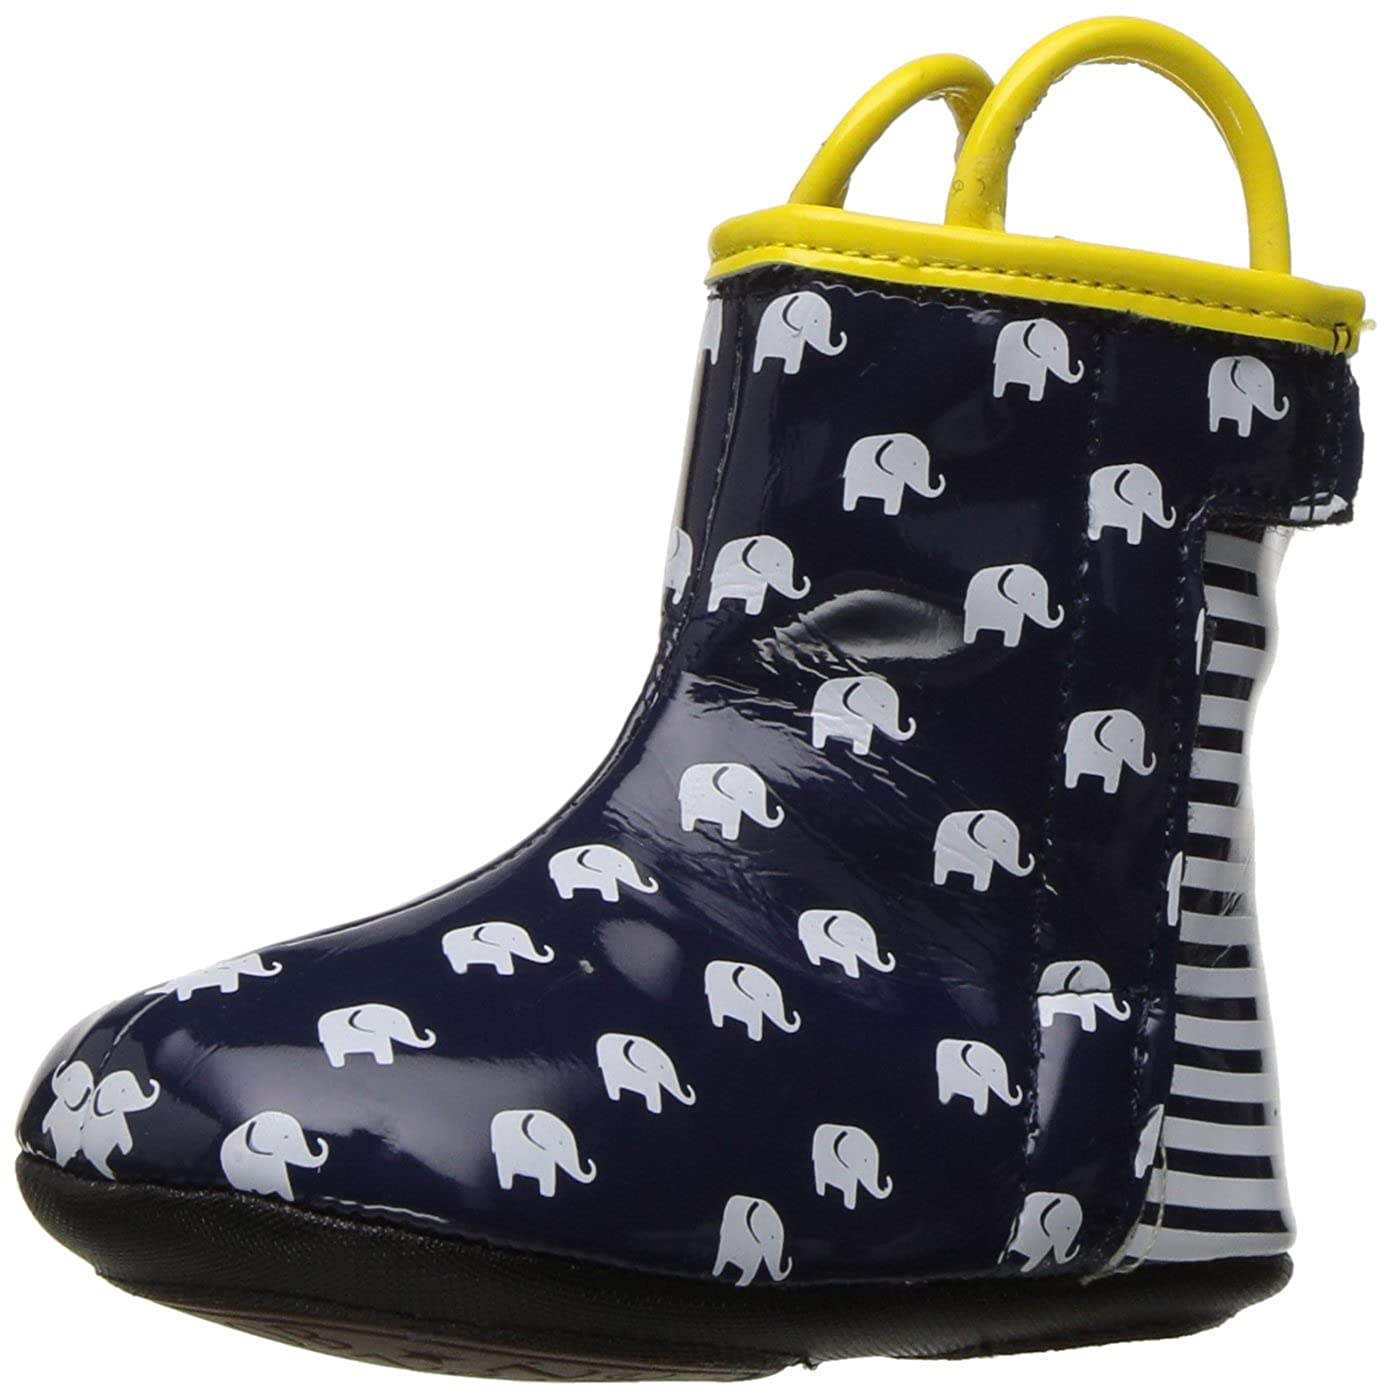 Robeez Rainboot - Mini Shoez Shark Bite Rainboot - K